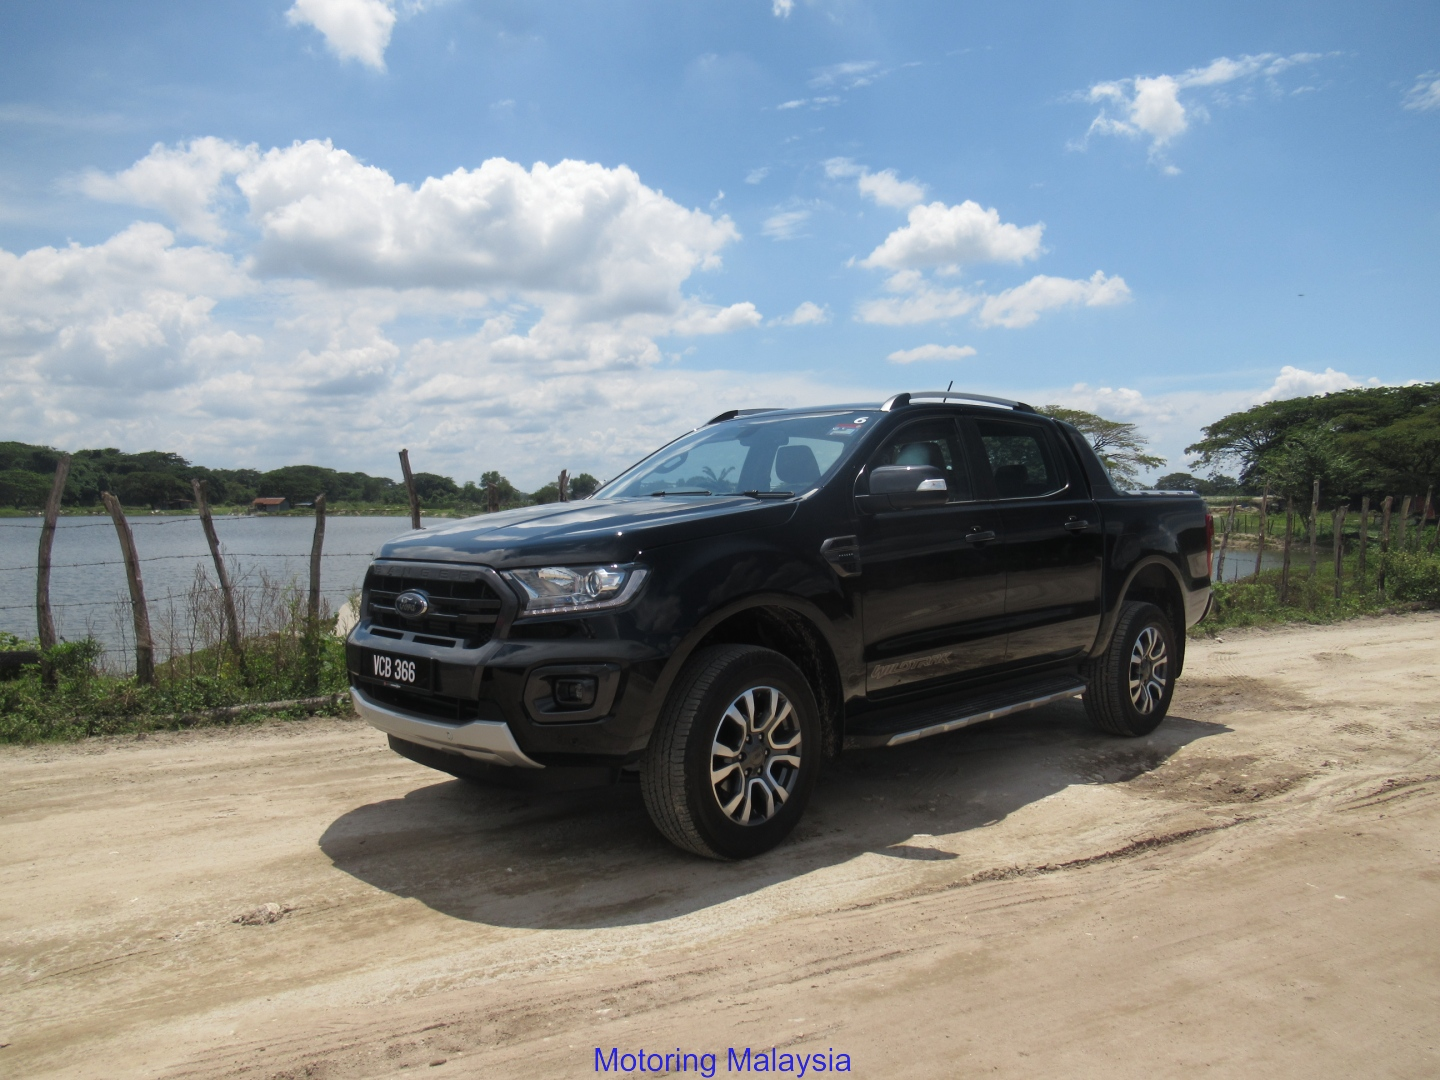 Motoring Malaysia First Drive Impressions The New Ford Ranger